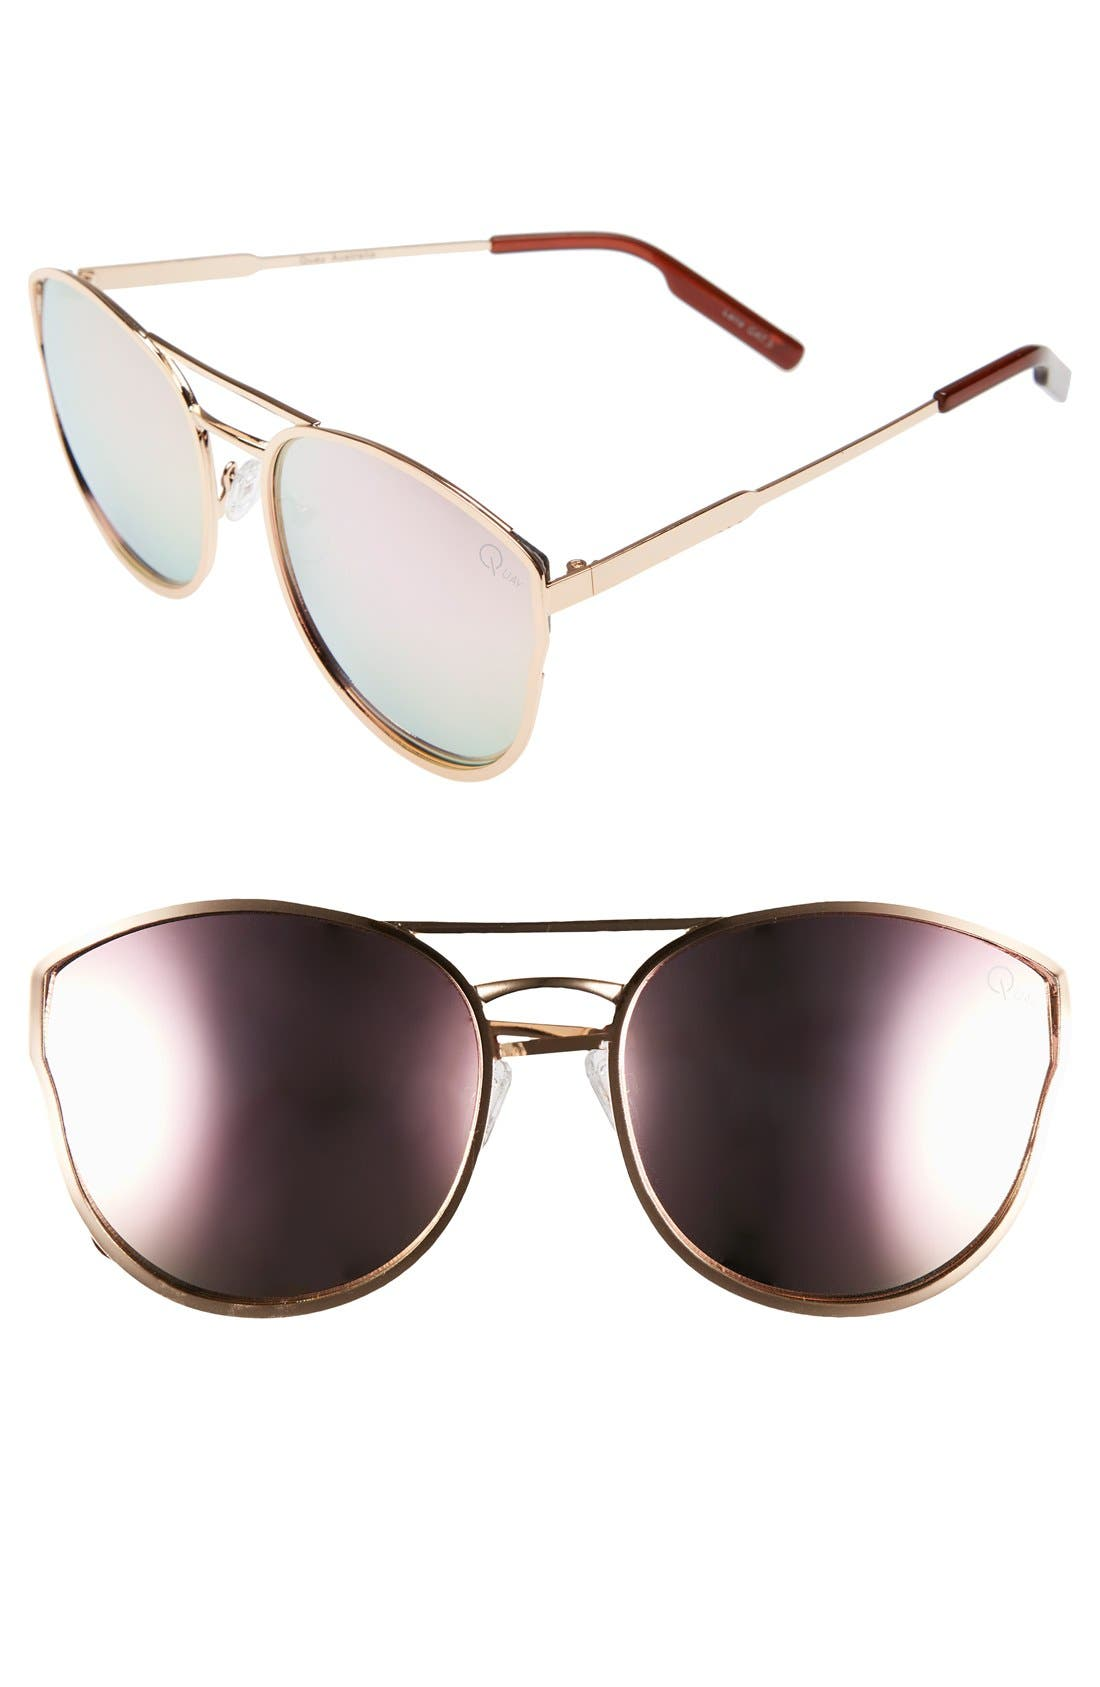 Cherry Bomb 60mm Sunglasses,                             Main thumbnail 1, color,                             ROSE GOLD/ PINK